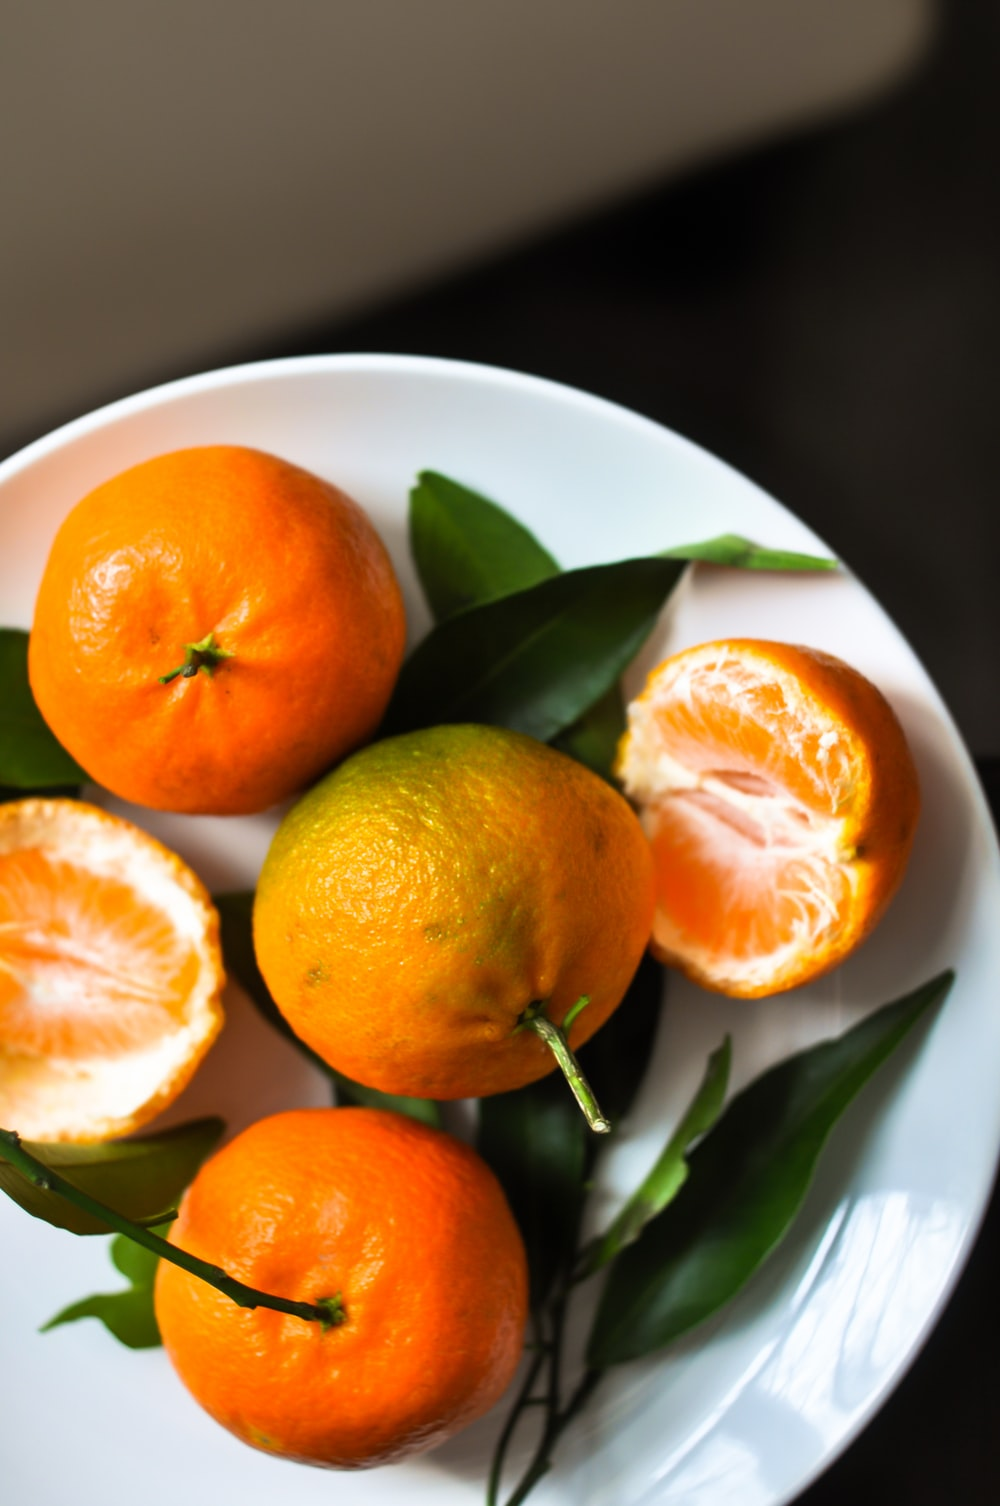 orange fruits on plate